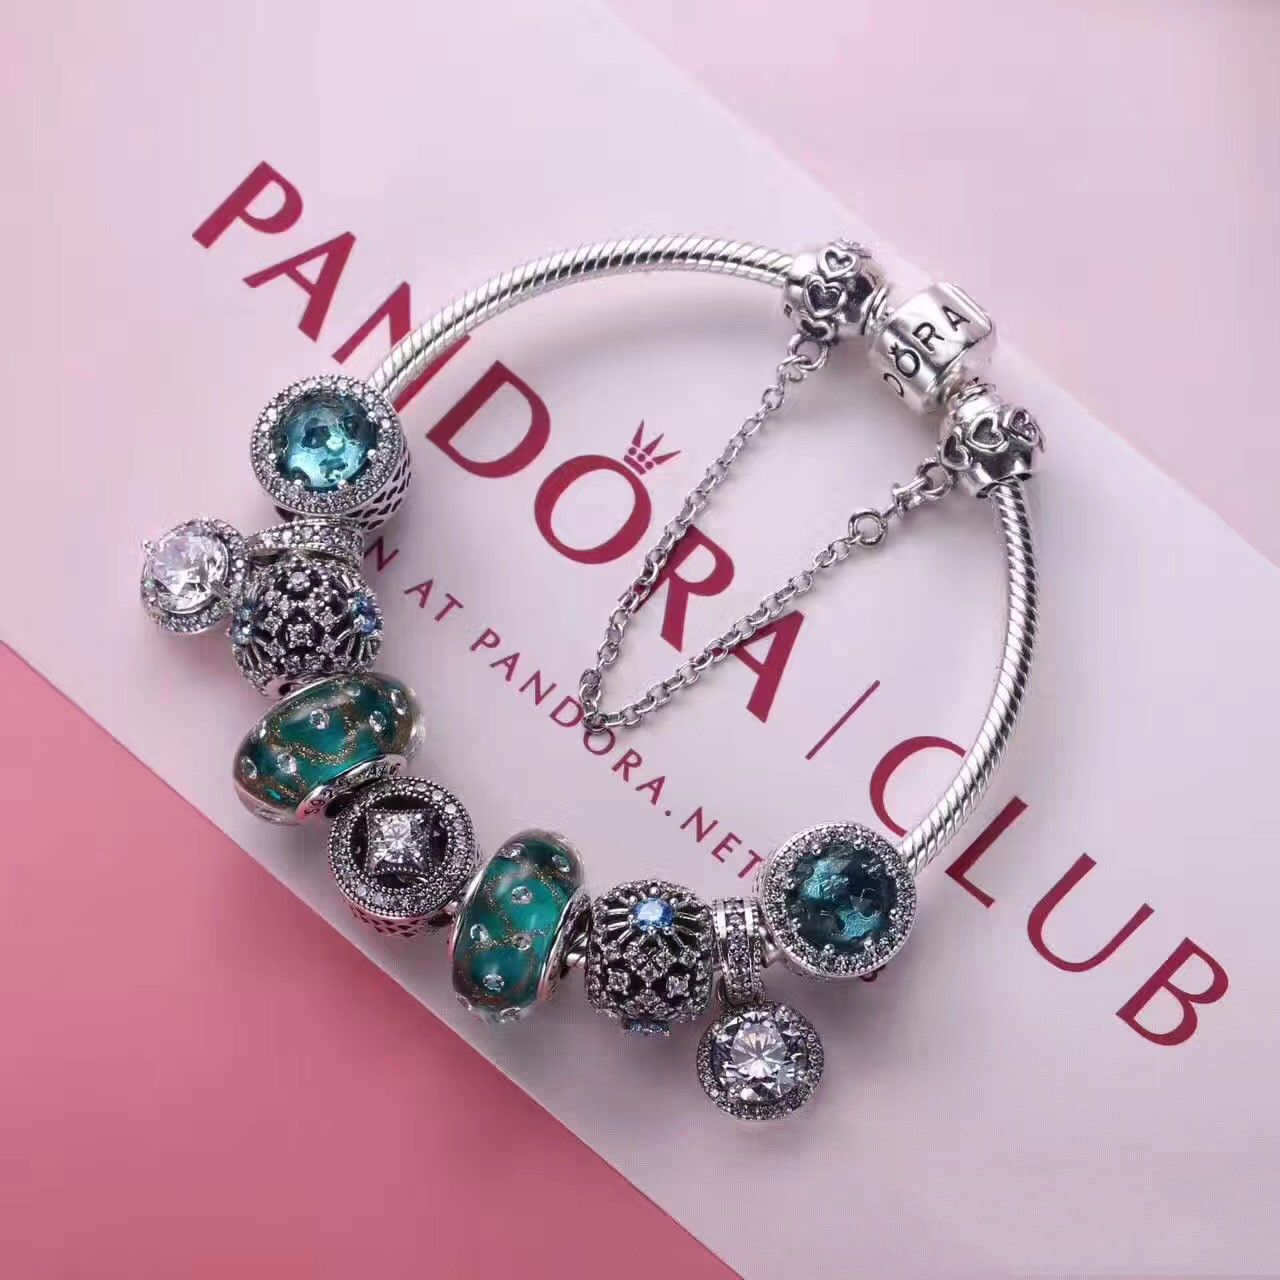 Authentic pandora charm bracelet in deluxe blue with 8 pcs charms ...